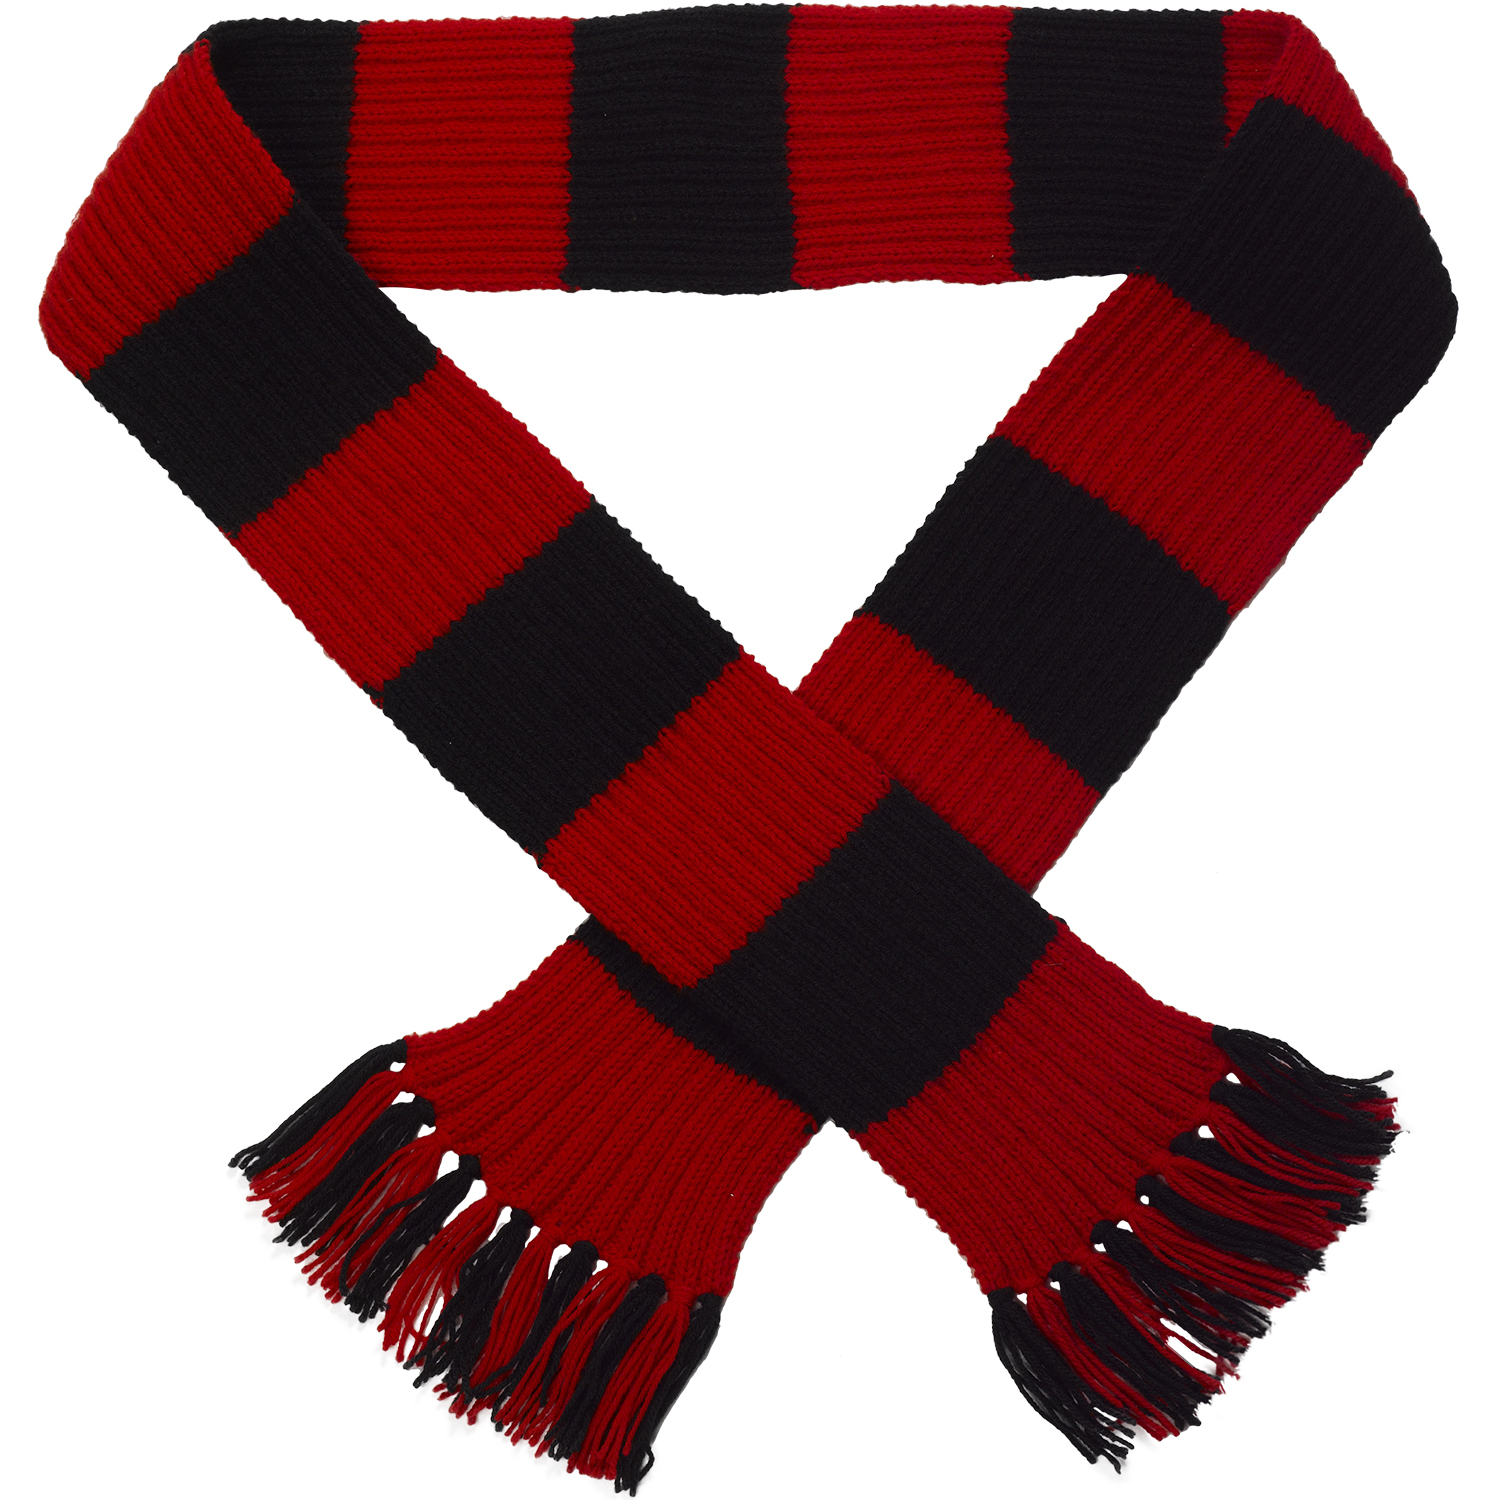 Craft hobby knitted scarf kit football rugby dk double knitting craft hobby knitted scarf kit football rugby dk double knitting pattern wool bankloansurffo Image collections